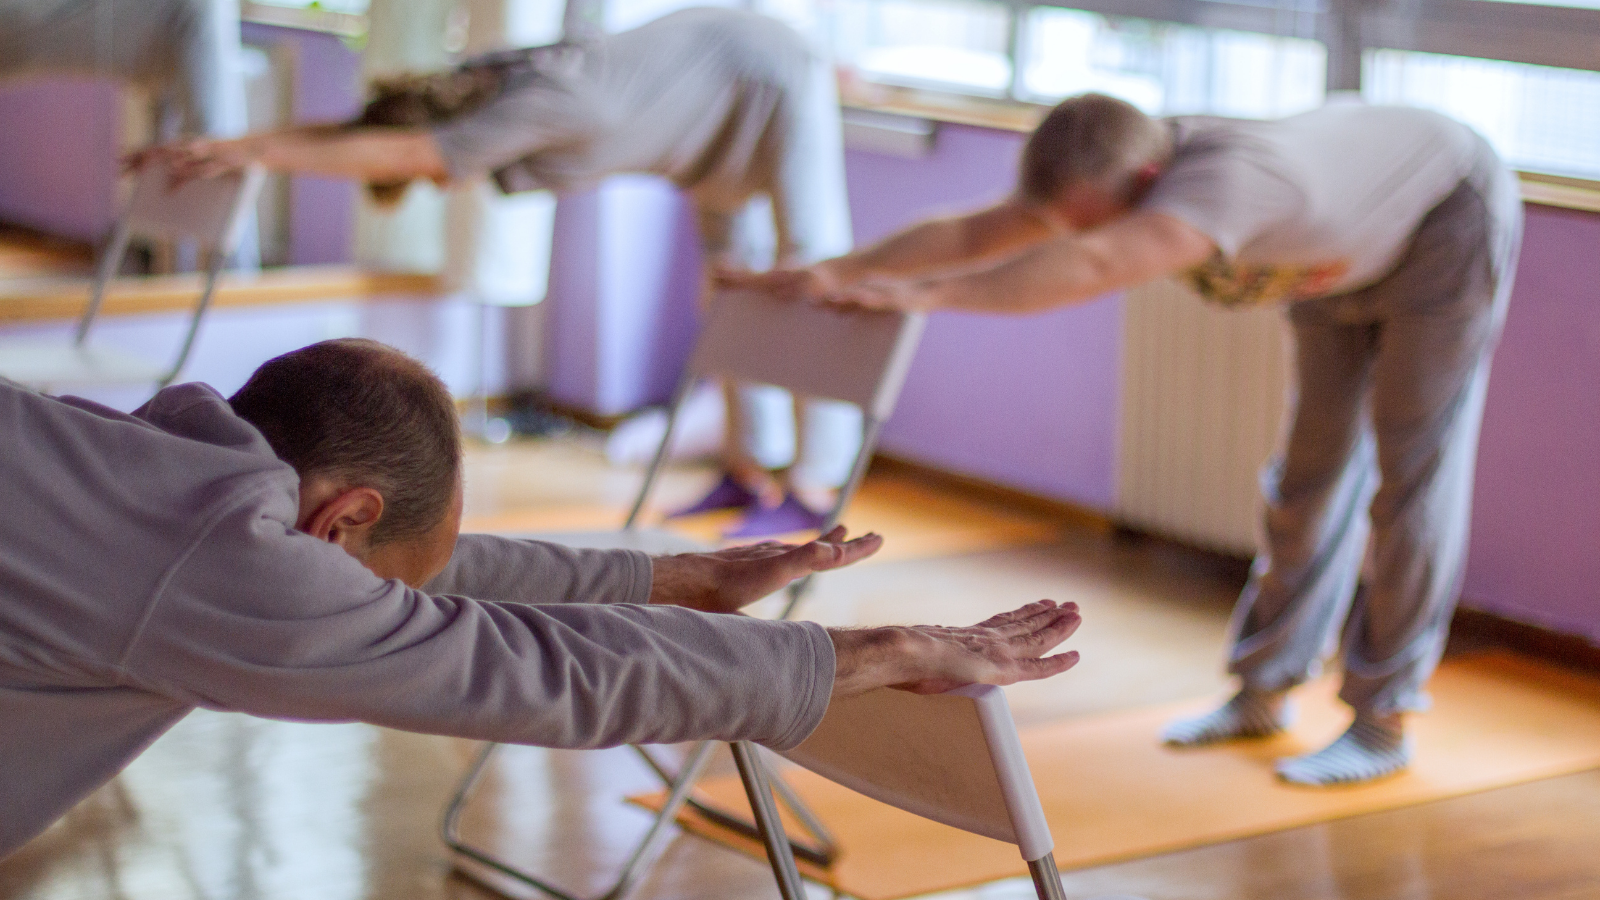 Research suggests that exercise and stress reduction can positively affect treatment for Parkinson's disease